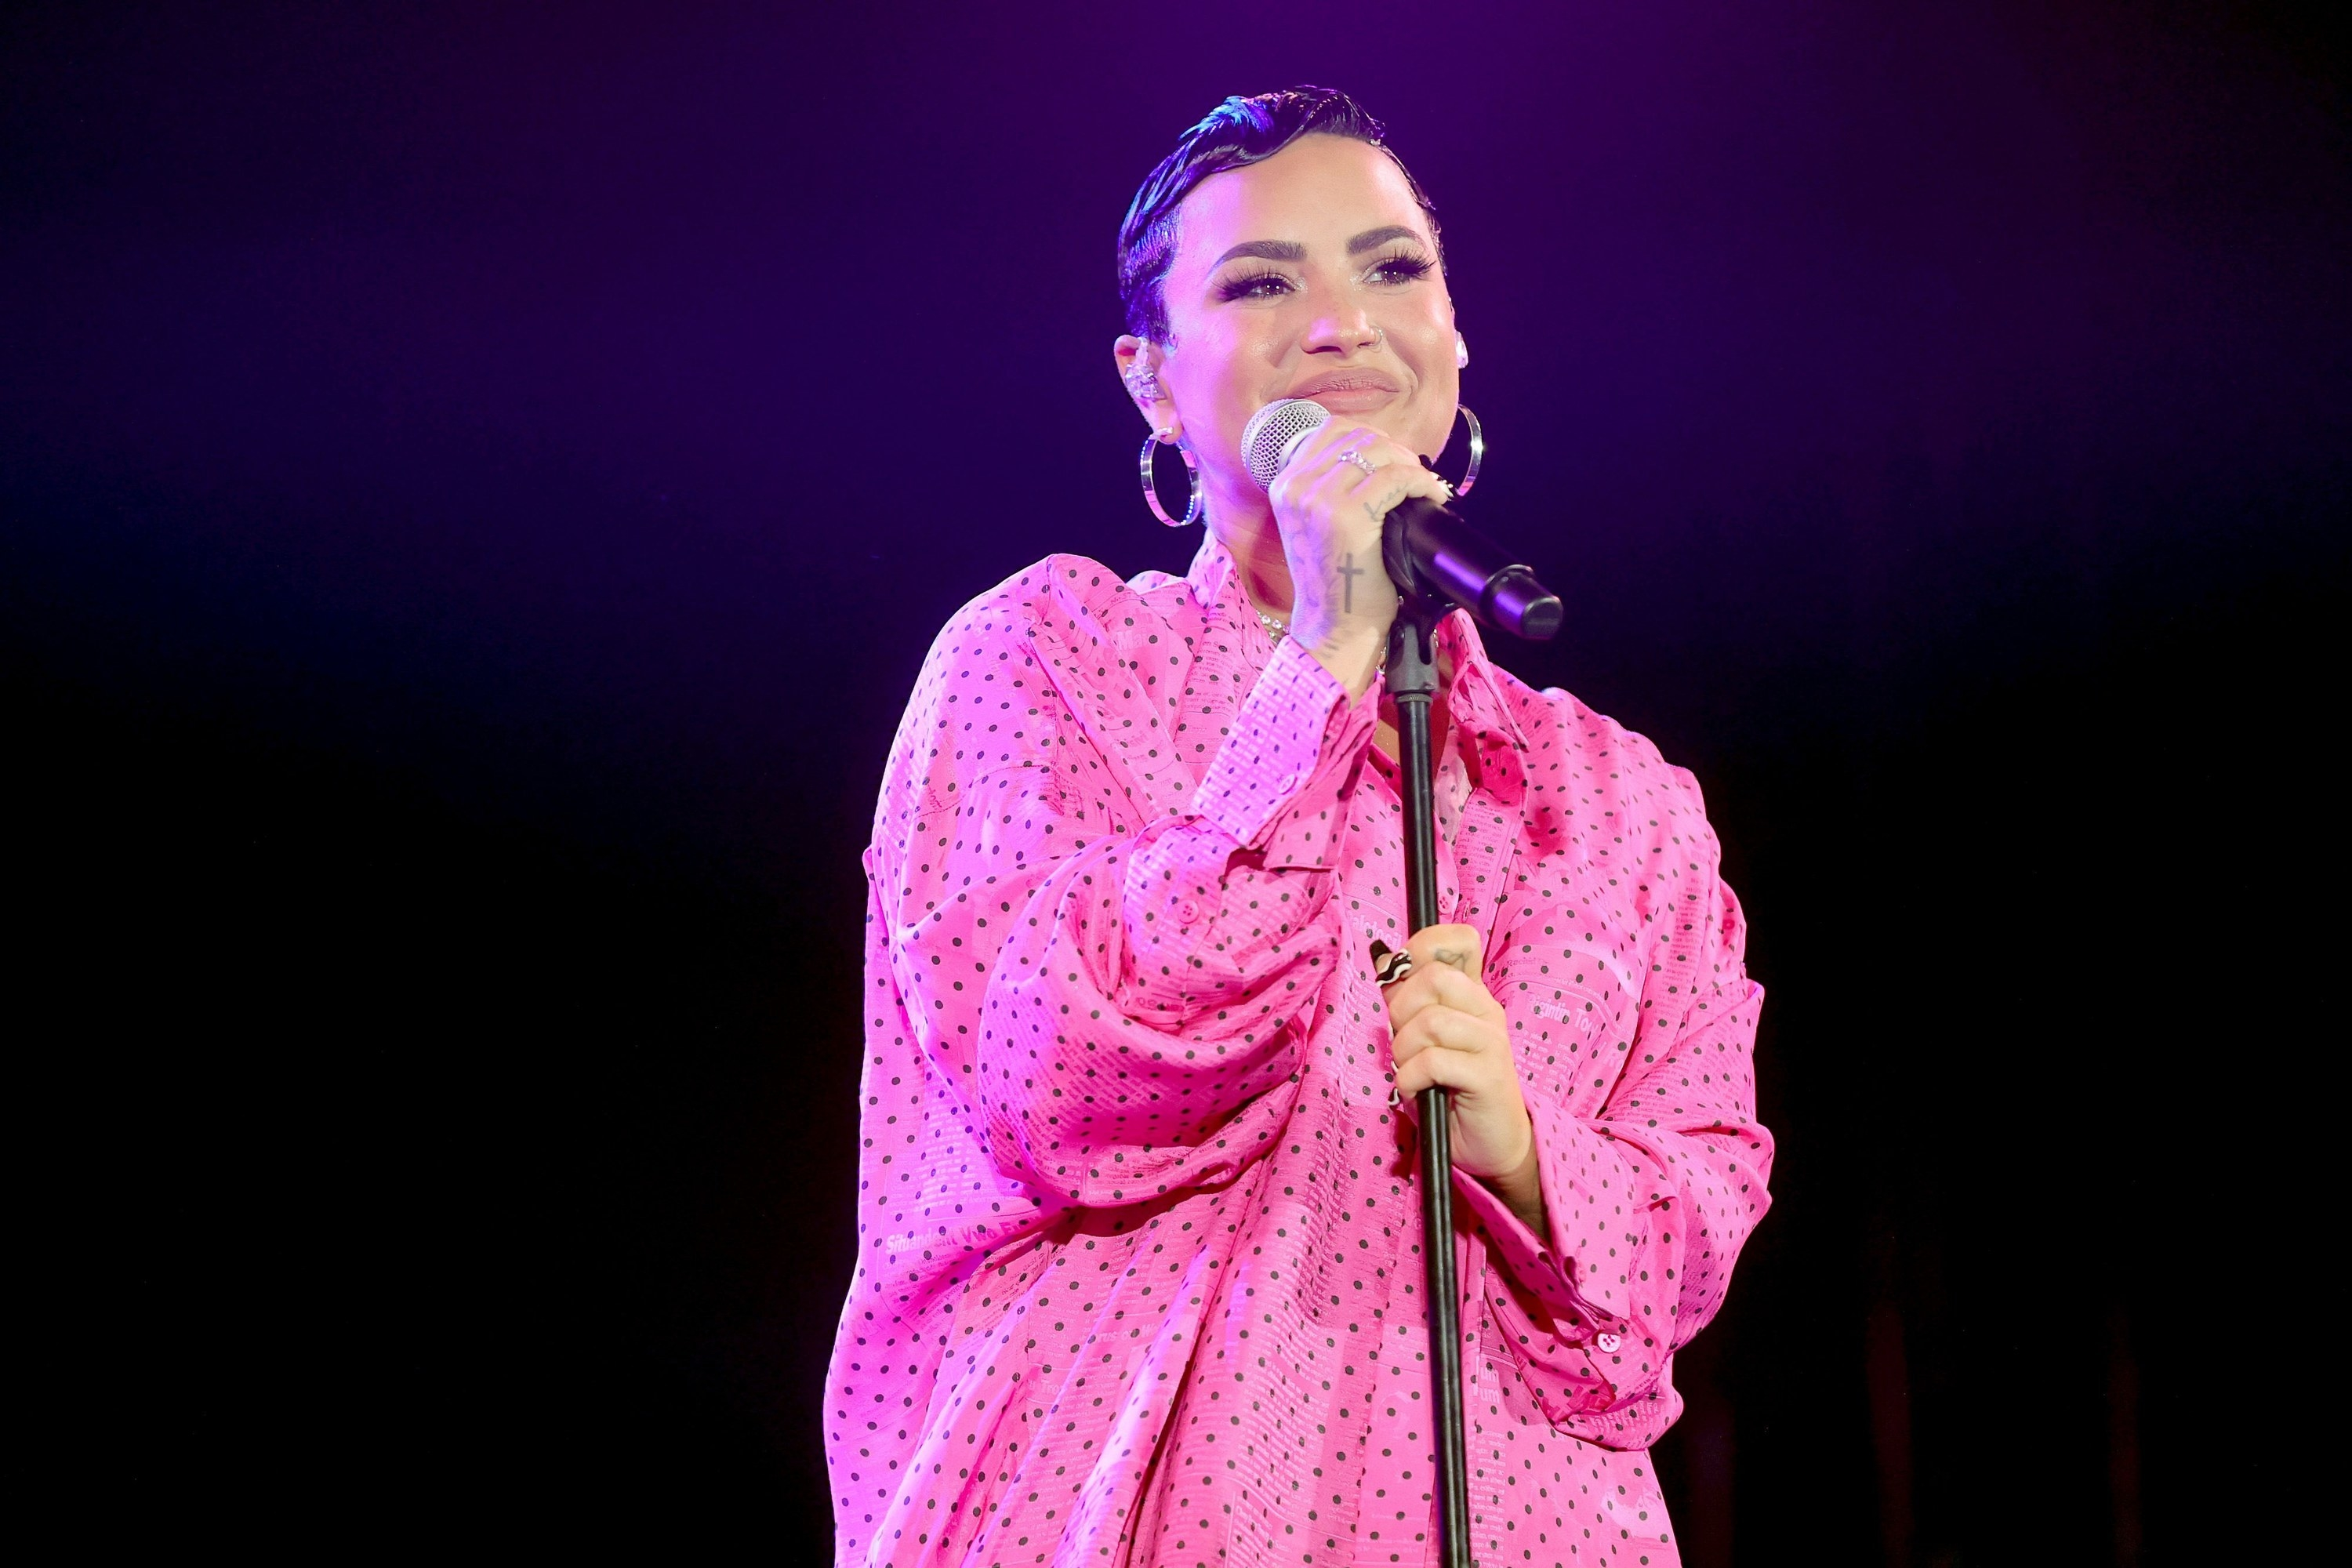 Demi performing on stage in a polka dot ensemble and rocking short hair